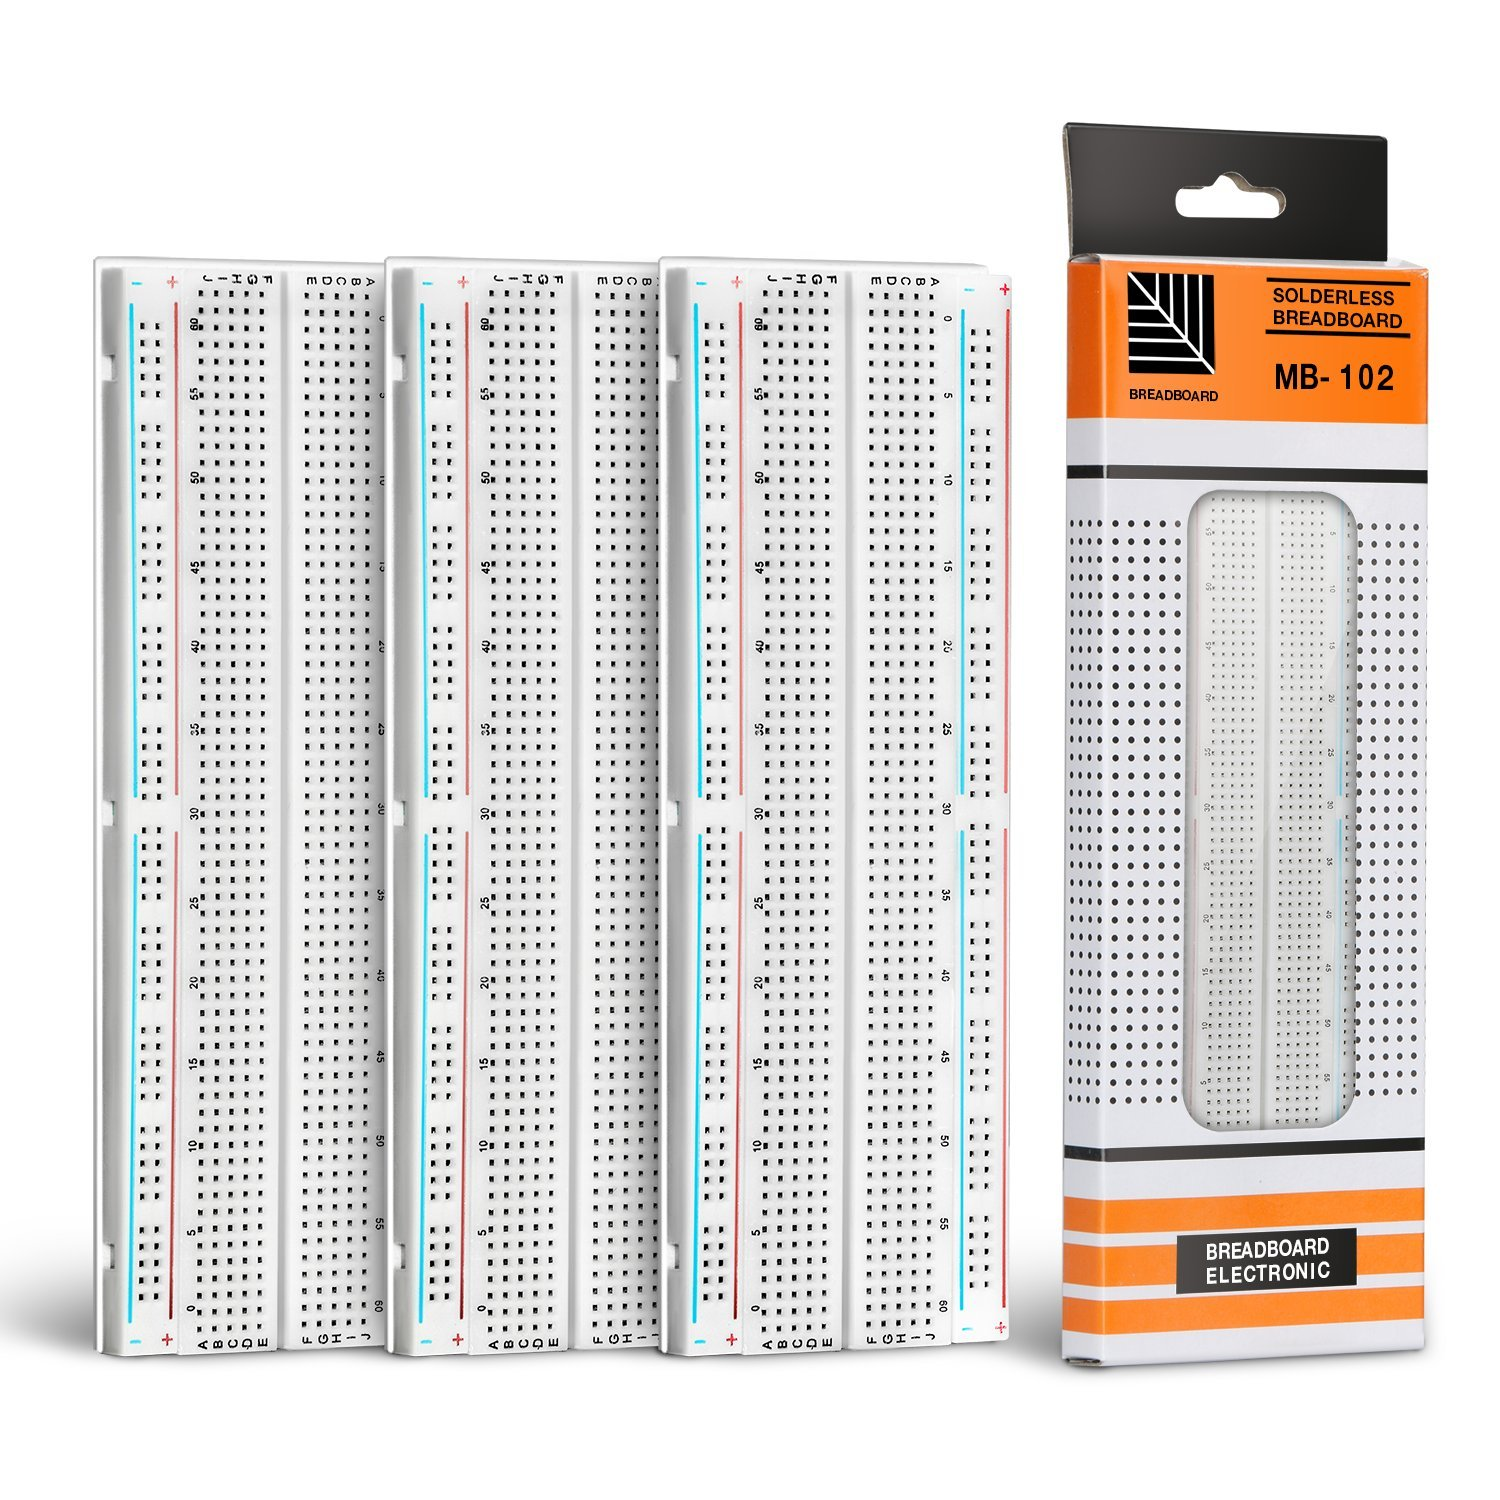 Jamber Solderless Breadboard 830 Point Clear Circuit Pcb Board Kit With 400 Tie Points And Matching For Protoshield Circboard Prototyping 3pcs Business Industry Science